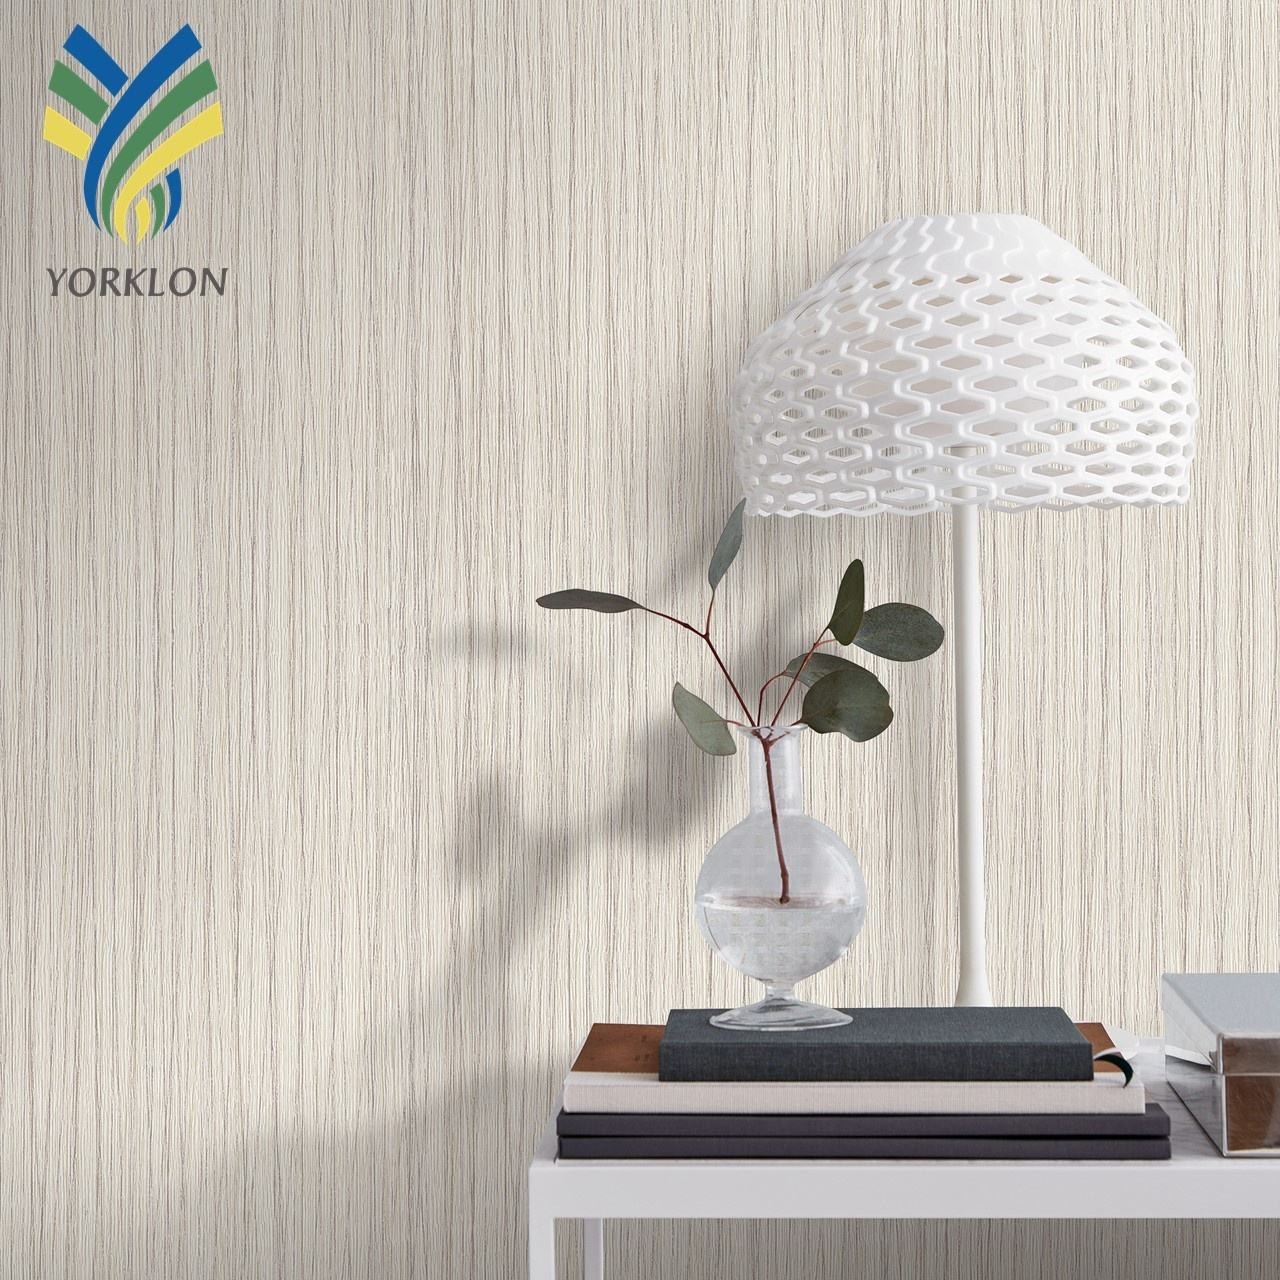 MWA 5 Fabric backed waterproof strip designs 3d wallpaper home decoration pvc textured roll vinyl wallpaper modern from room